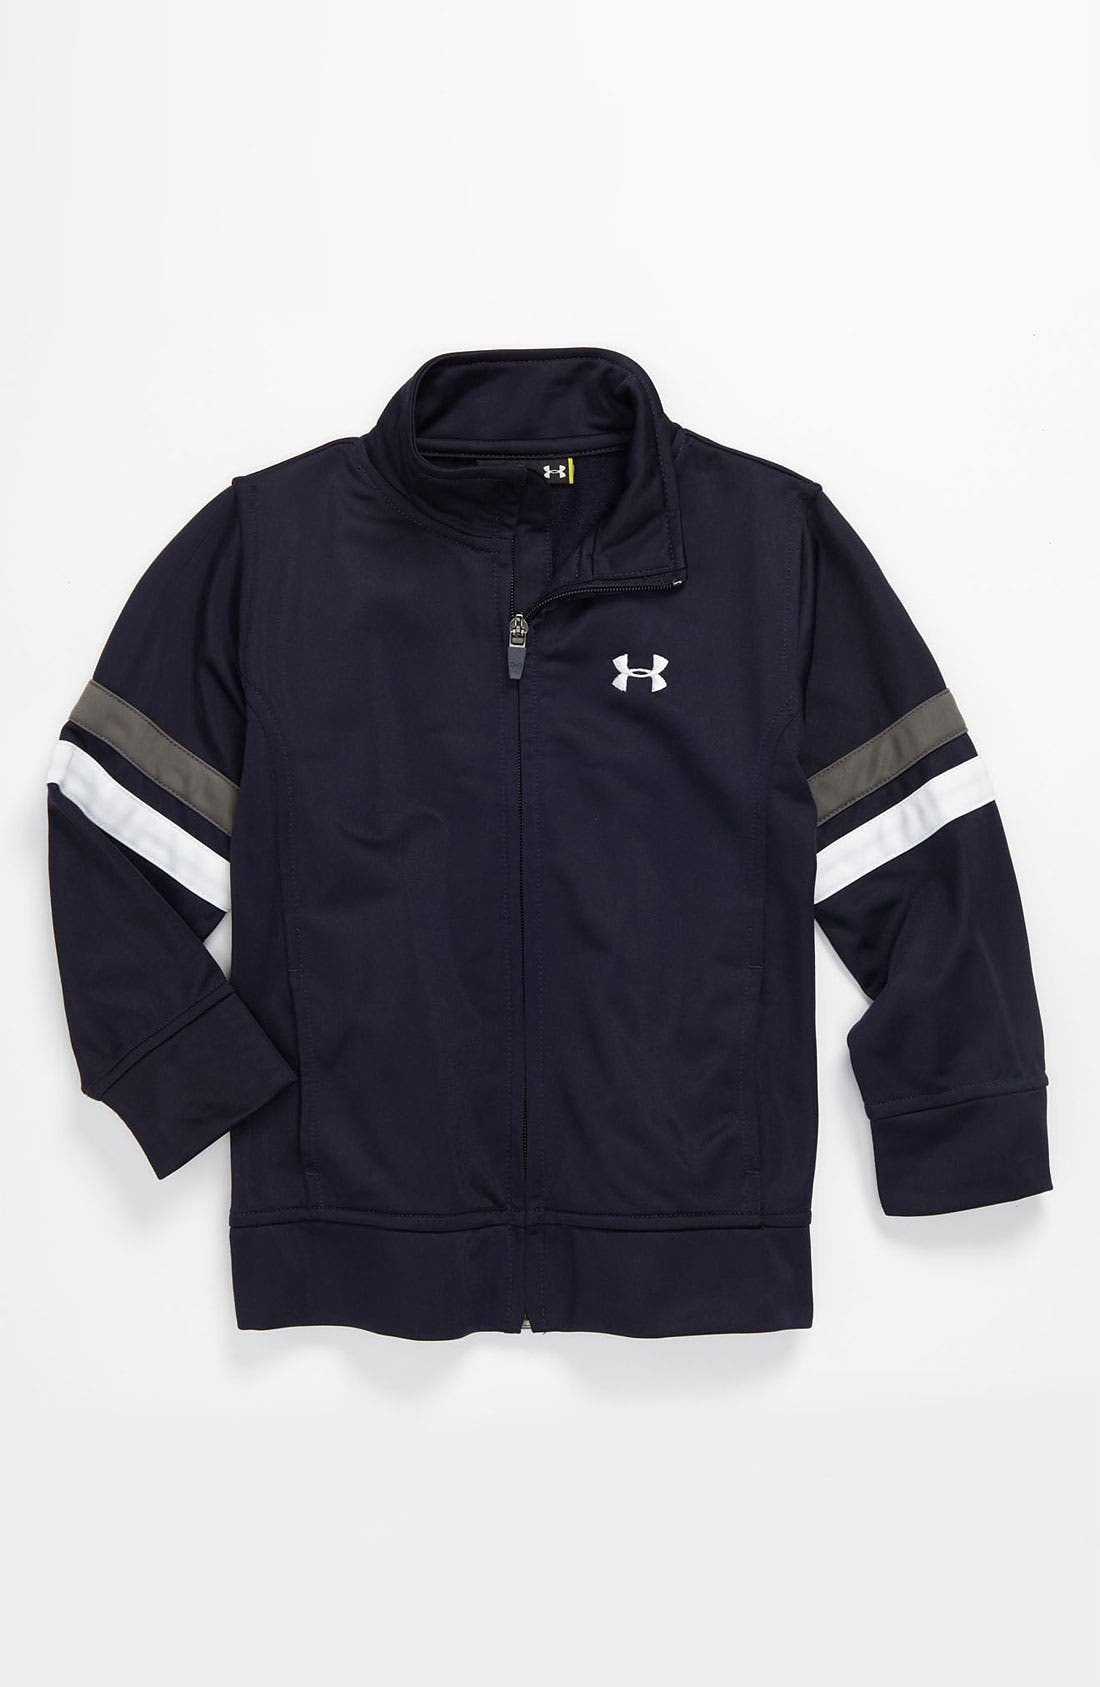 Alternate Image 1 Selected - Under Armour Warm-Up Jacket (Toddler)